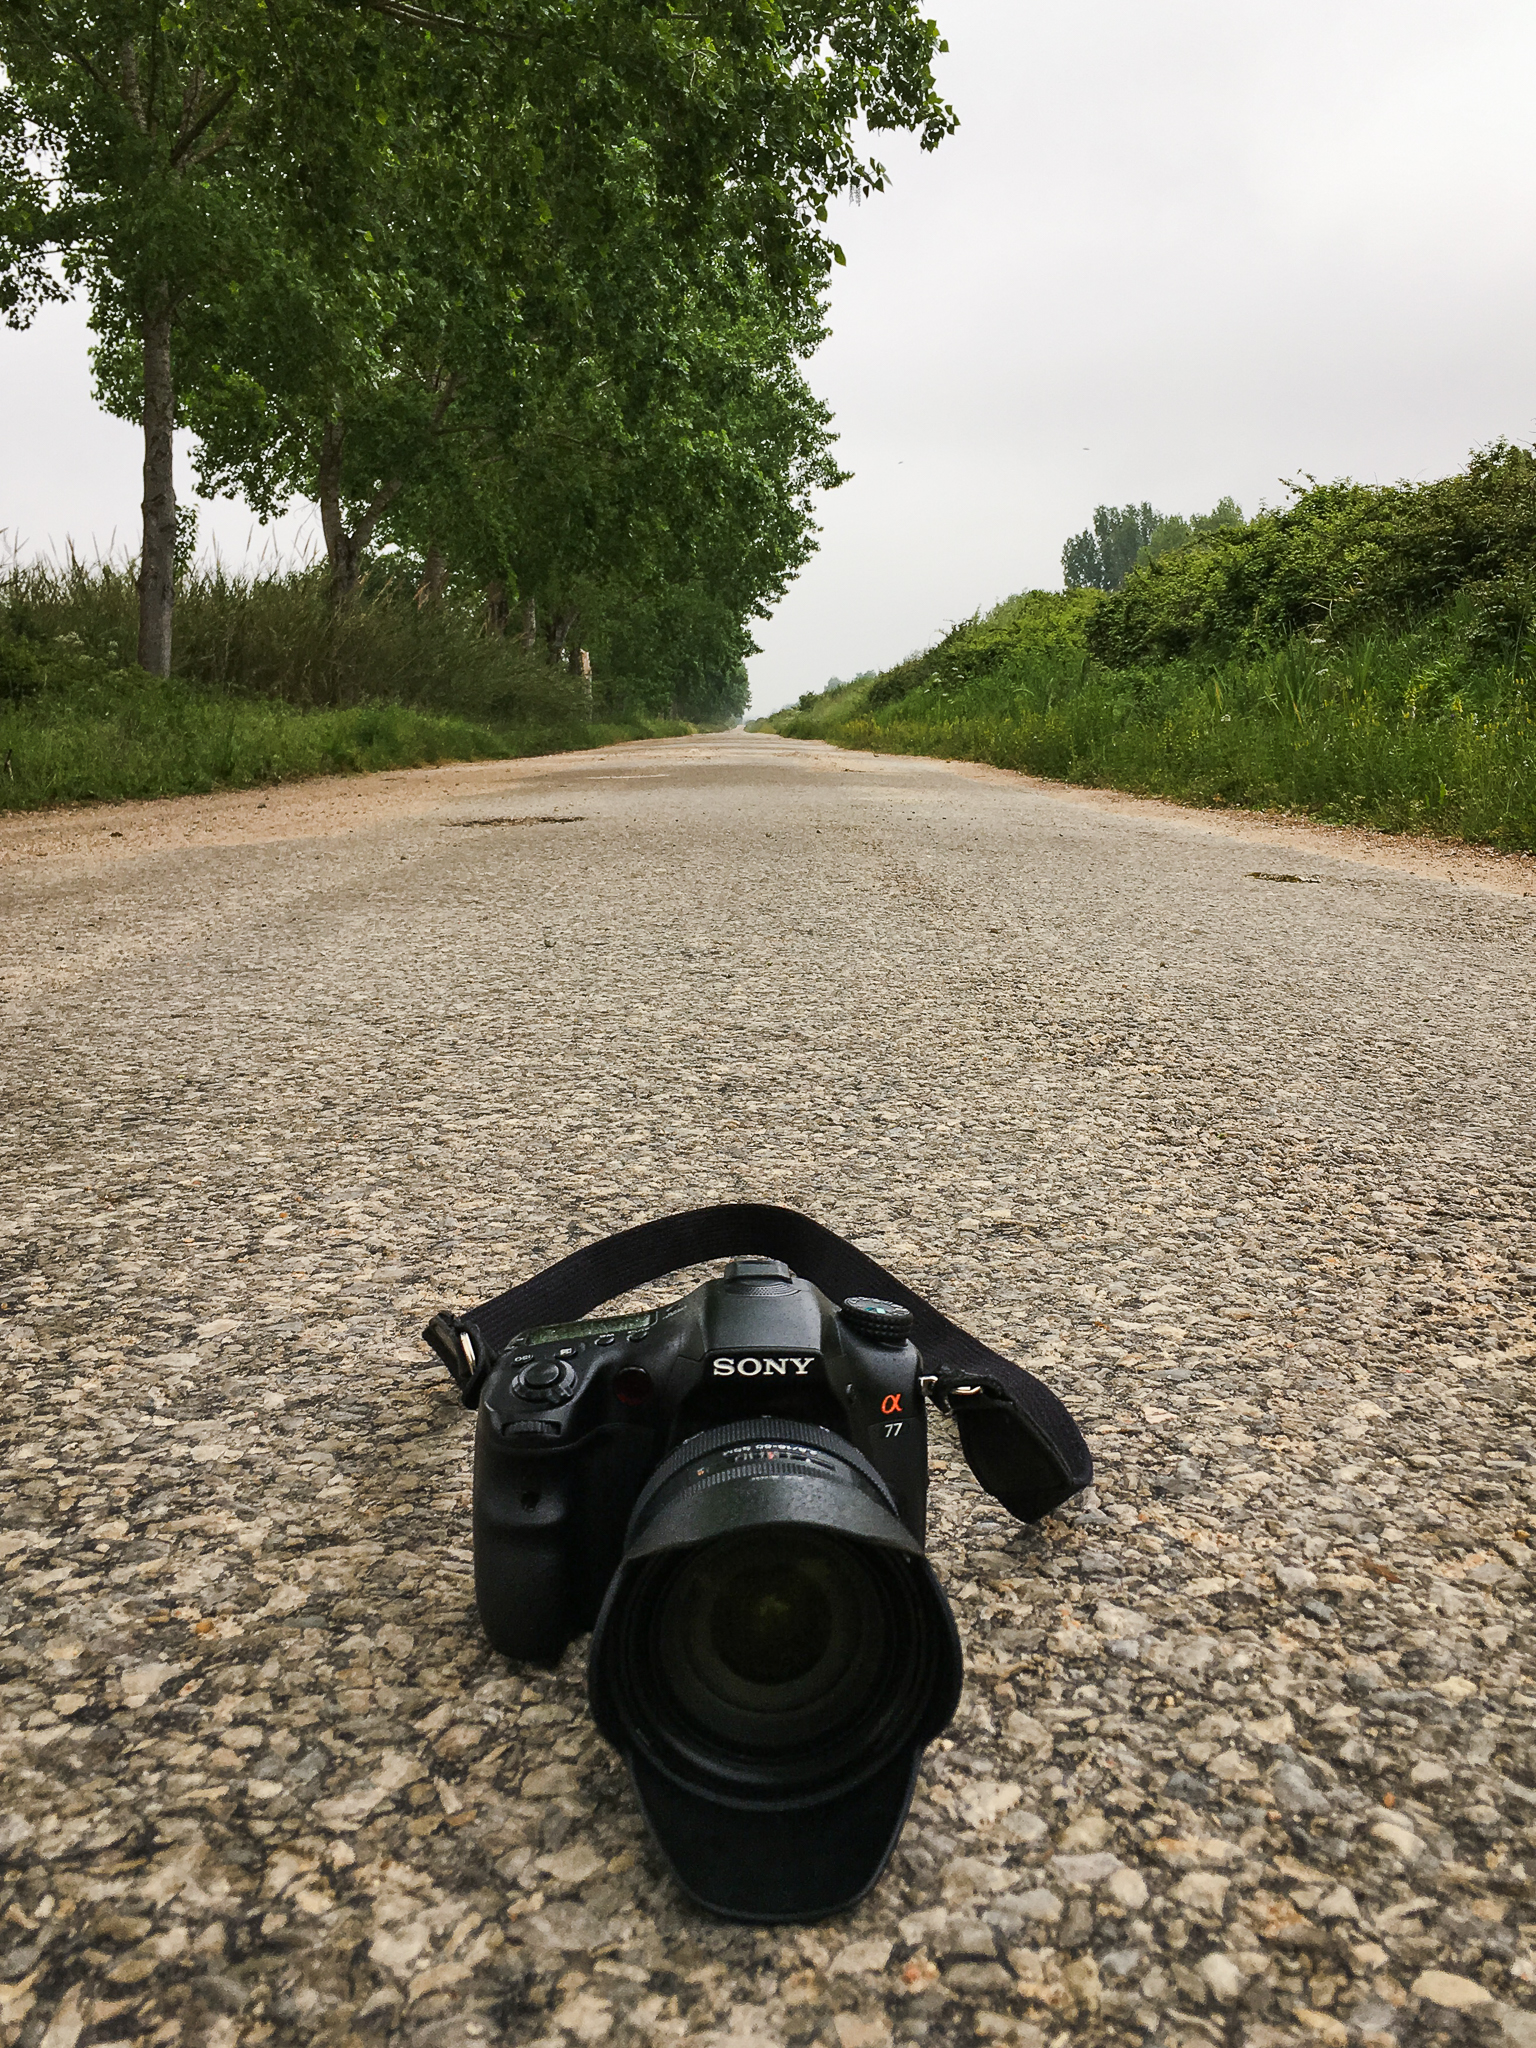 The Sony A77, still wet after a short period of rain in the first day of the pilgrimage.